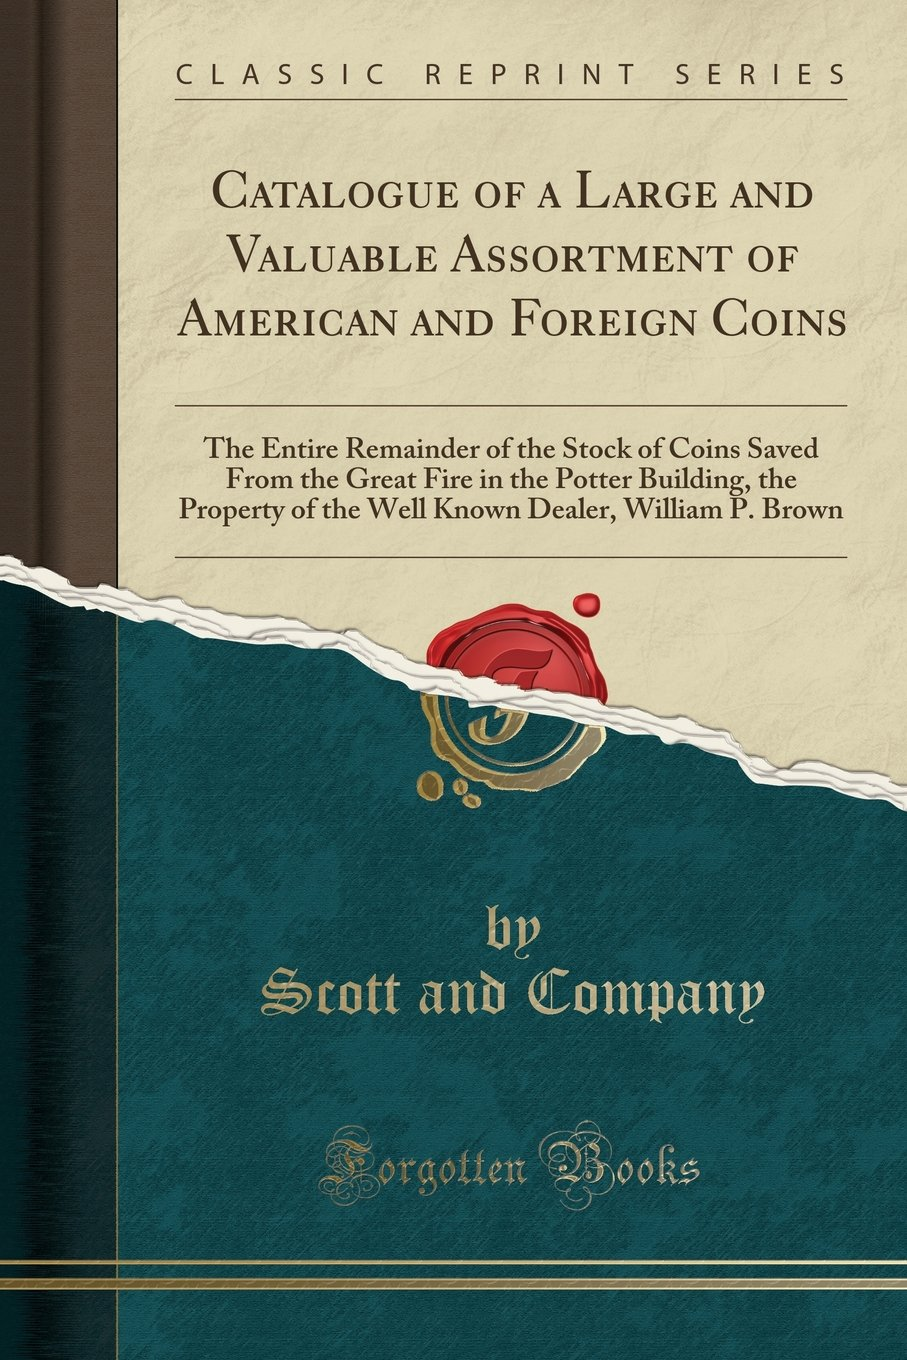 Download Catalogue of a Large and Valuable Assortment of American and Foreign Coins: The Entire Remainder of the Stock of Coins Saved From the Great Fire in ... Dealer, William P. Brown (Classic Reprint) pdf epub